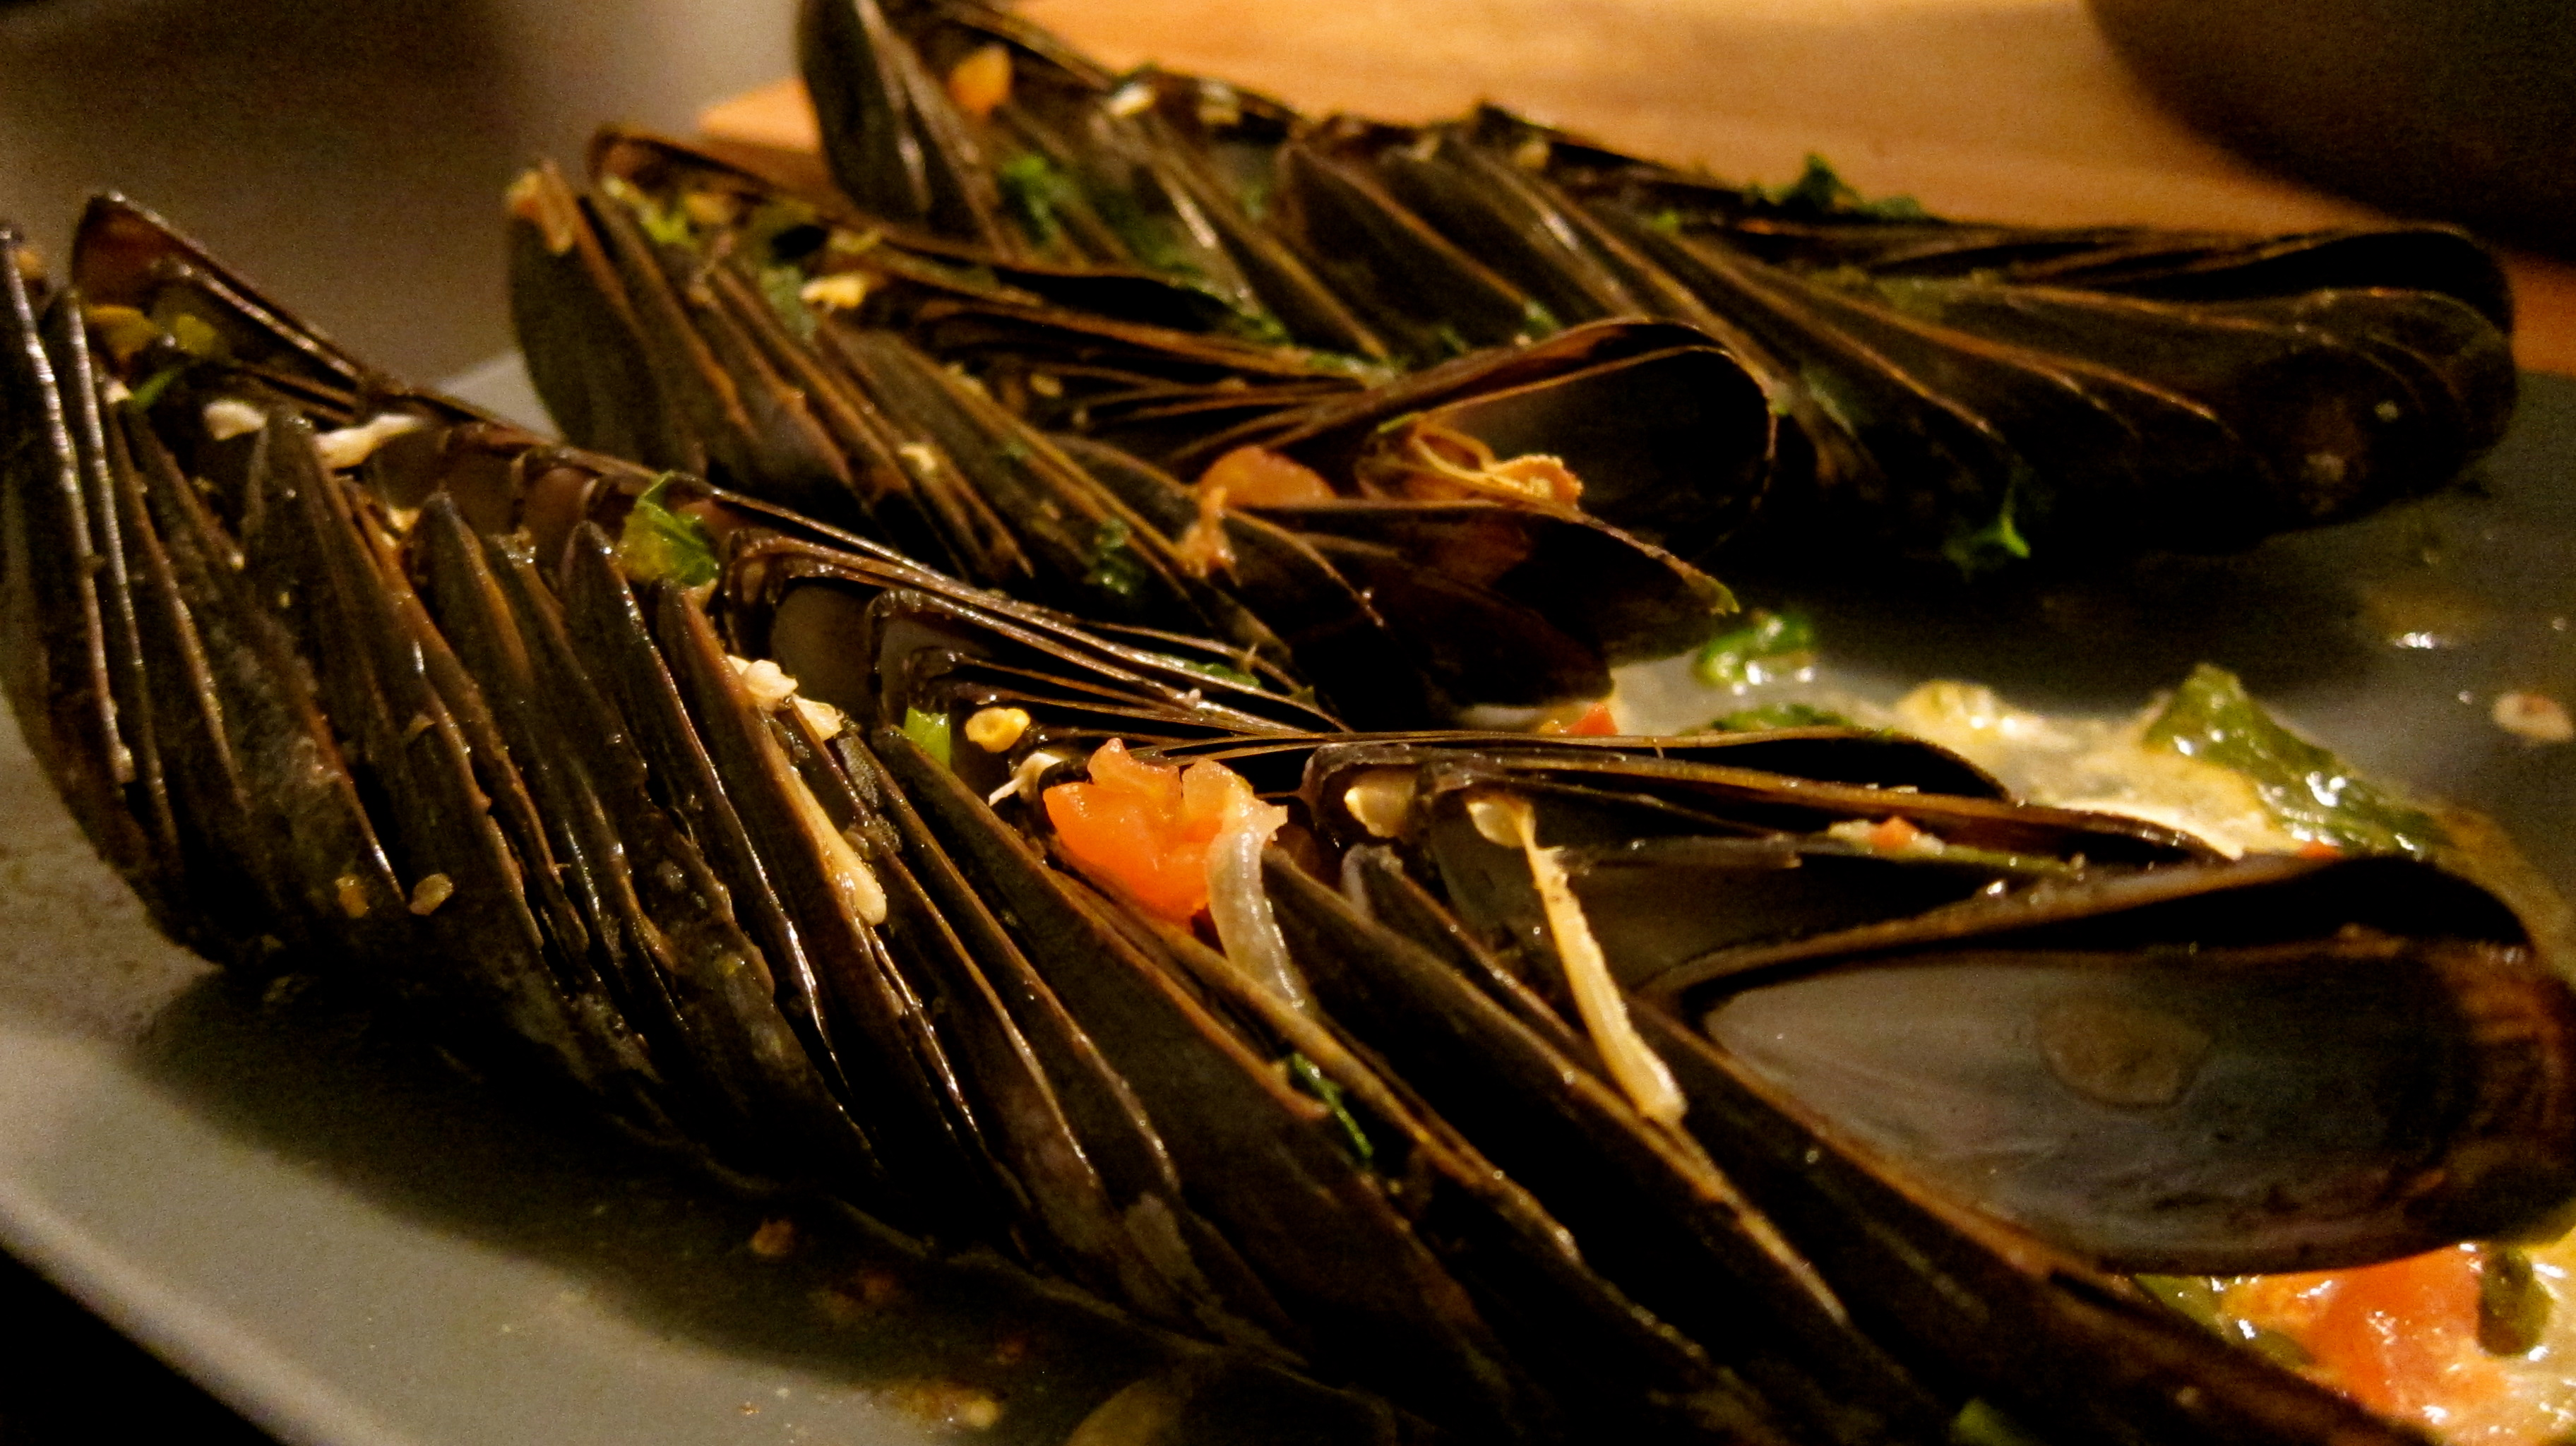 Can You Get Food Poisoning From Mussels